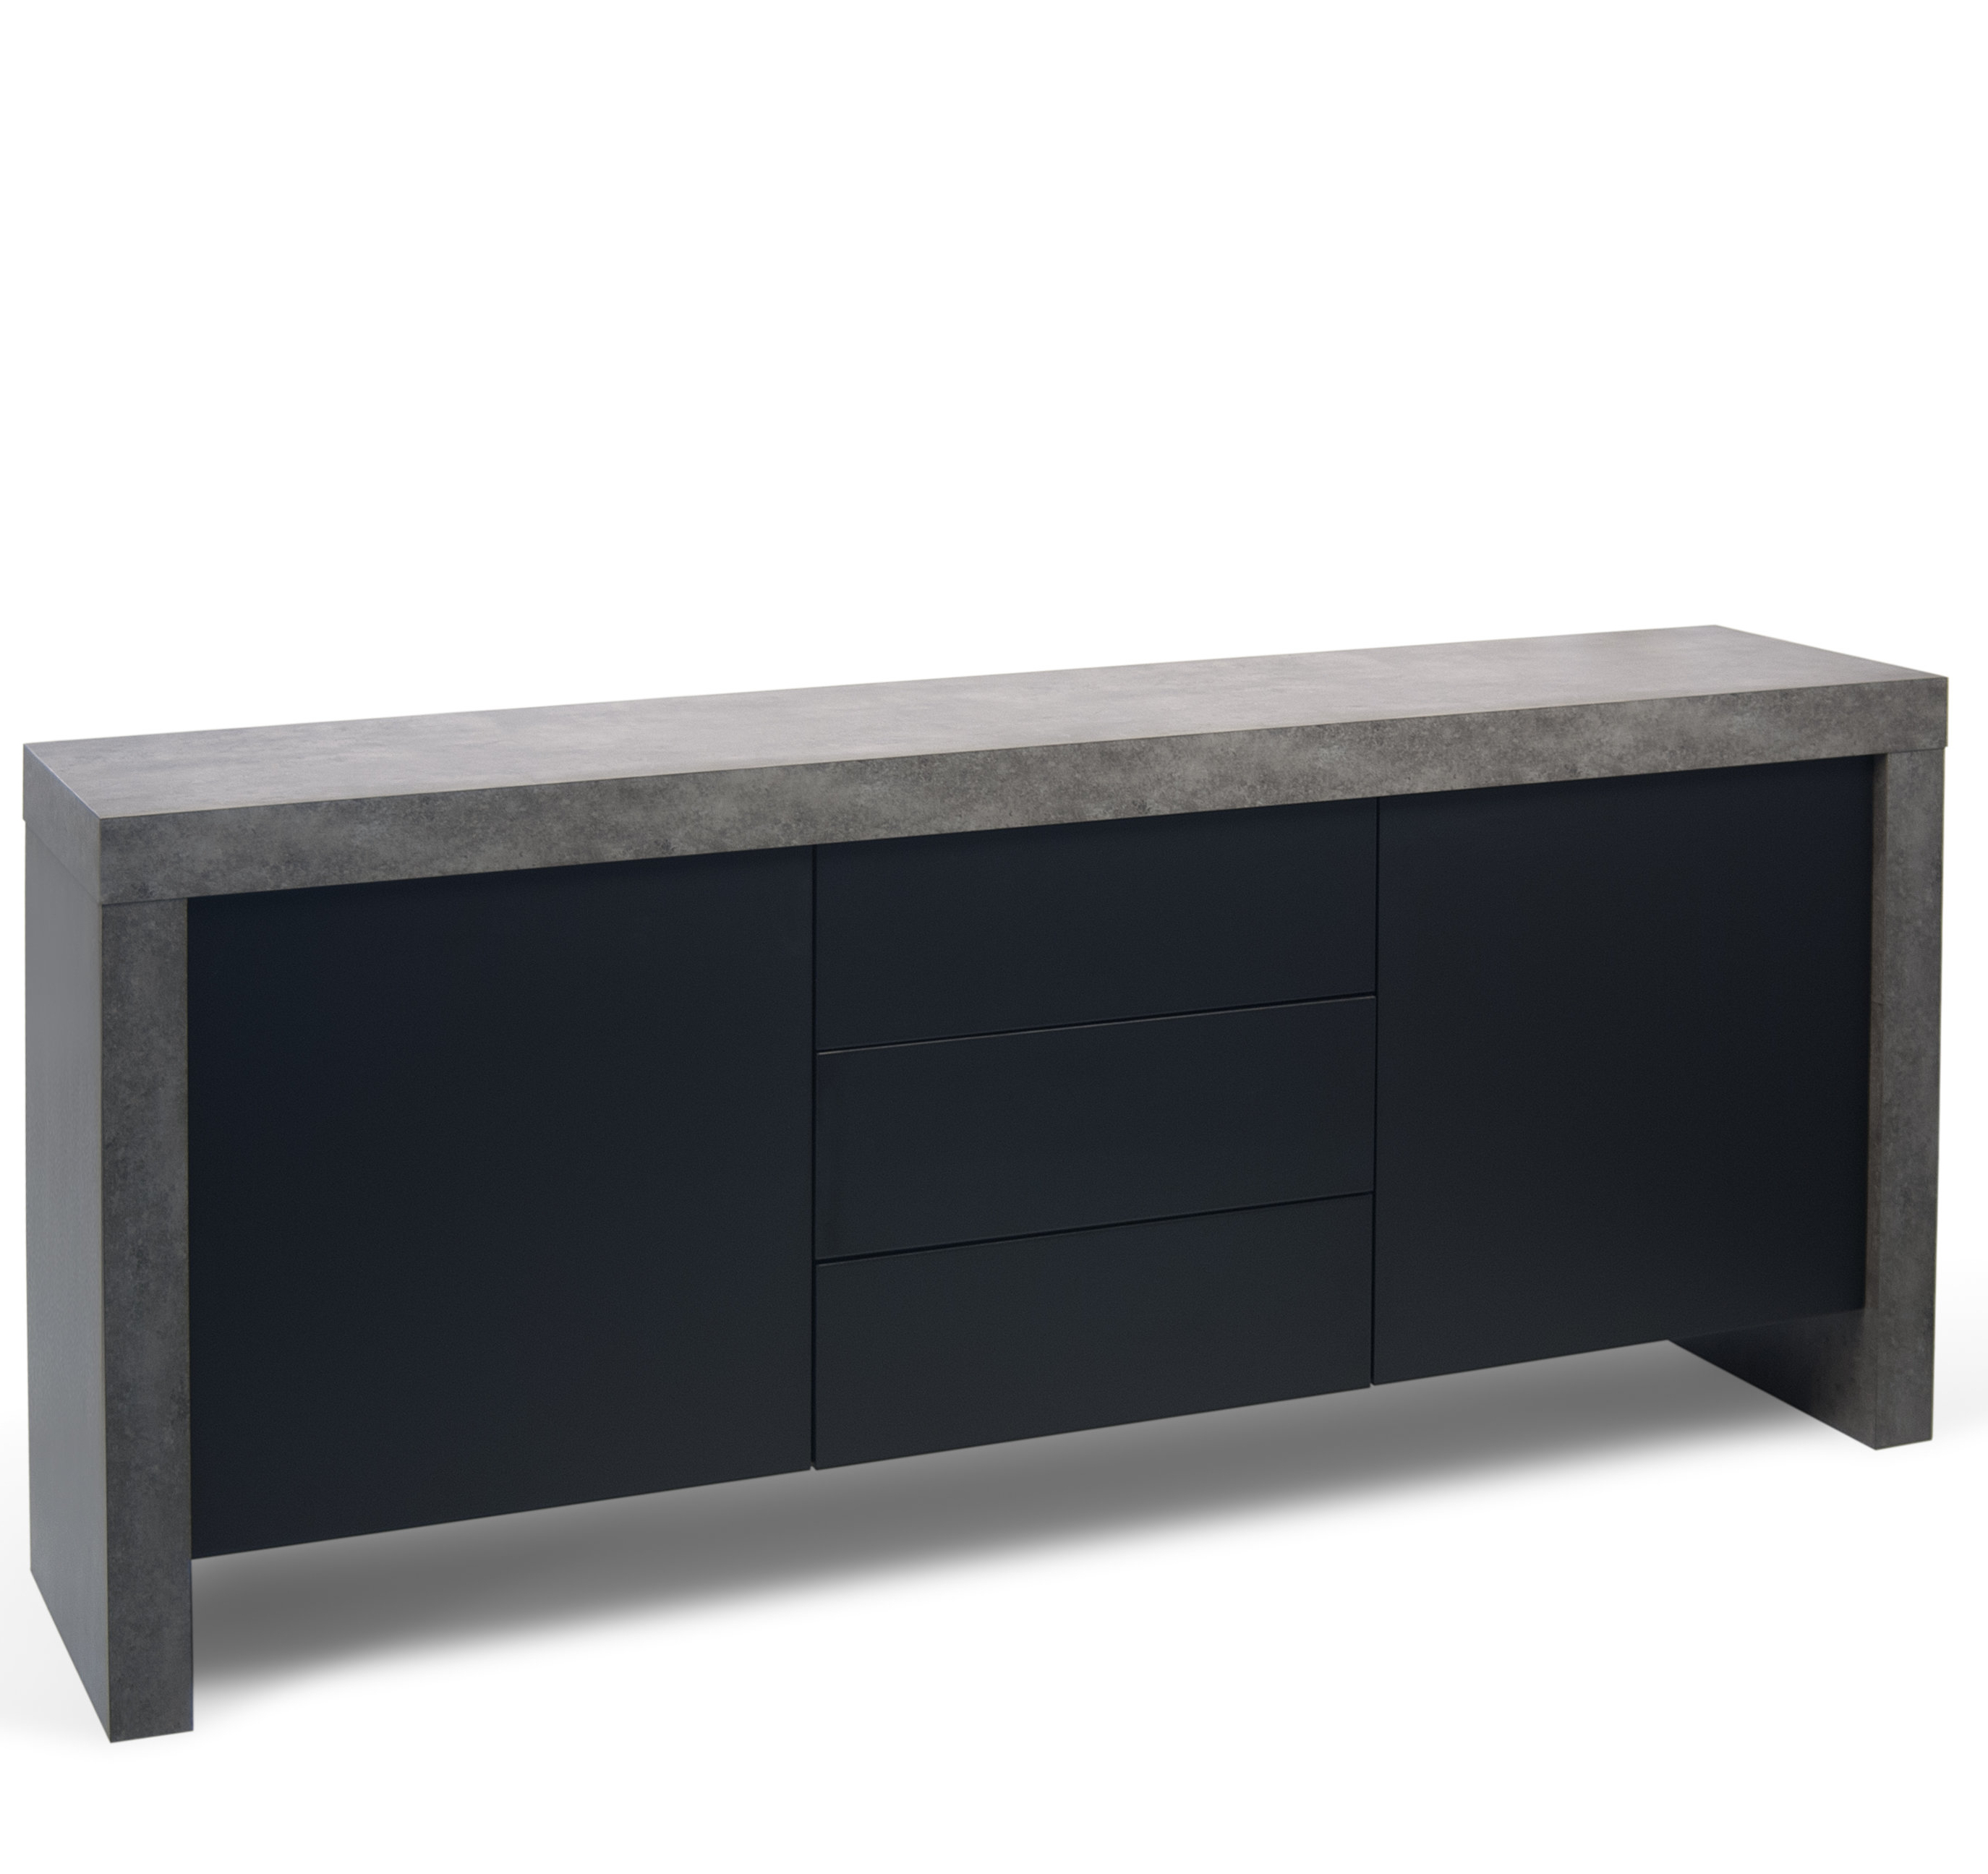 Joss & Main With Regard To Logan Sideboards (Gallery 17 of 20)